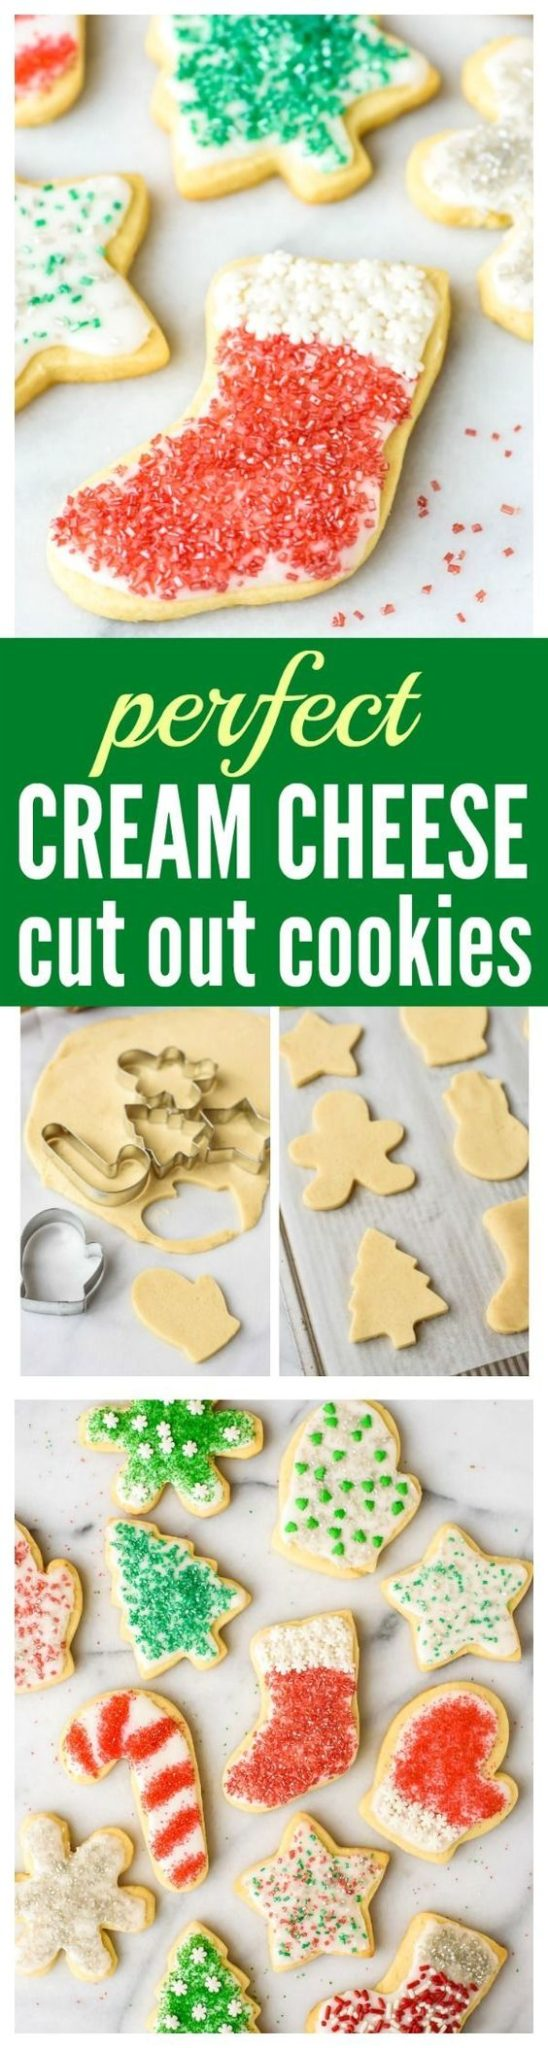 Perfect Cream Cheese Sugar Cookies RECIPE via Well Plated - The BEST Cut Out Sugar Cookies from scratch, with step-by-step photos. Cream cheese is the secret ingredient that makes the sugar cookies super soft, even days after they are baked. This is the only cut out Christmas cookie recipe you will ever need!